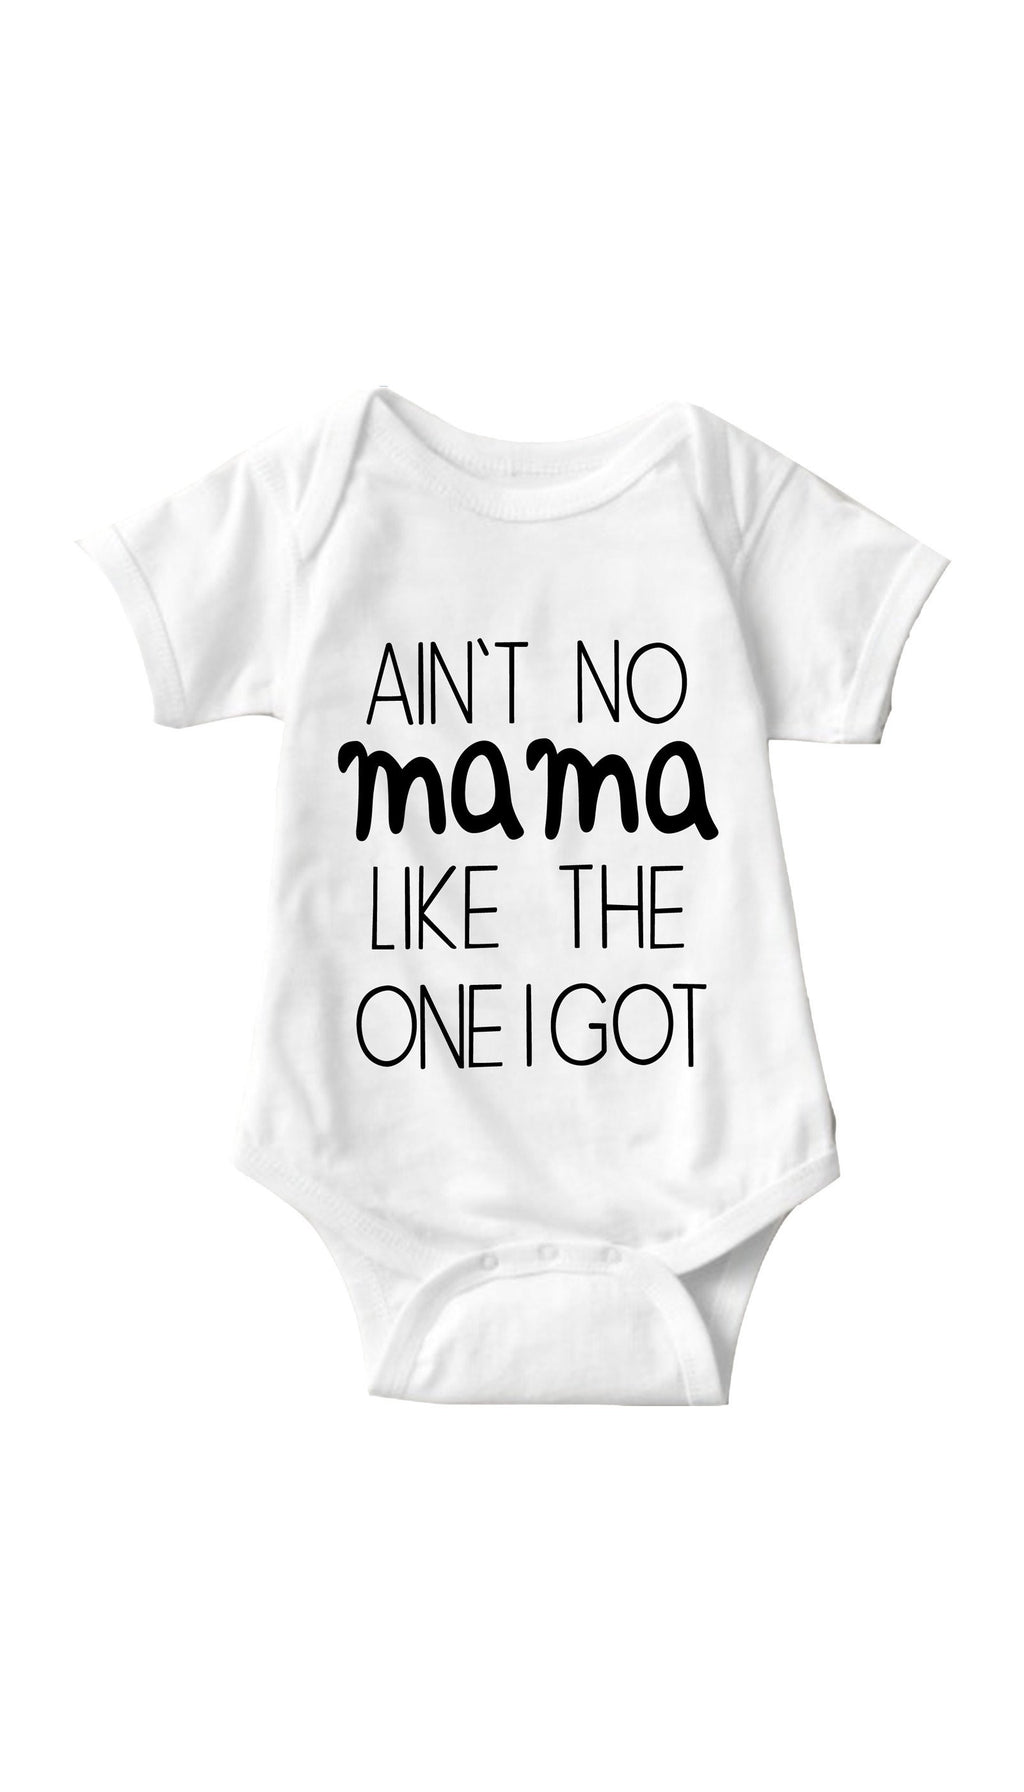 Aint No Mama Like The One I Got White Infant Onesie | Sarcastic ME